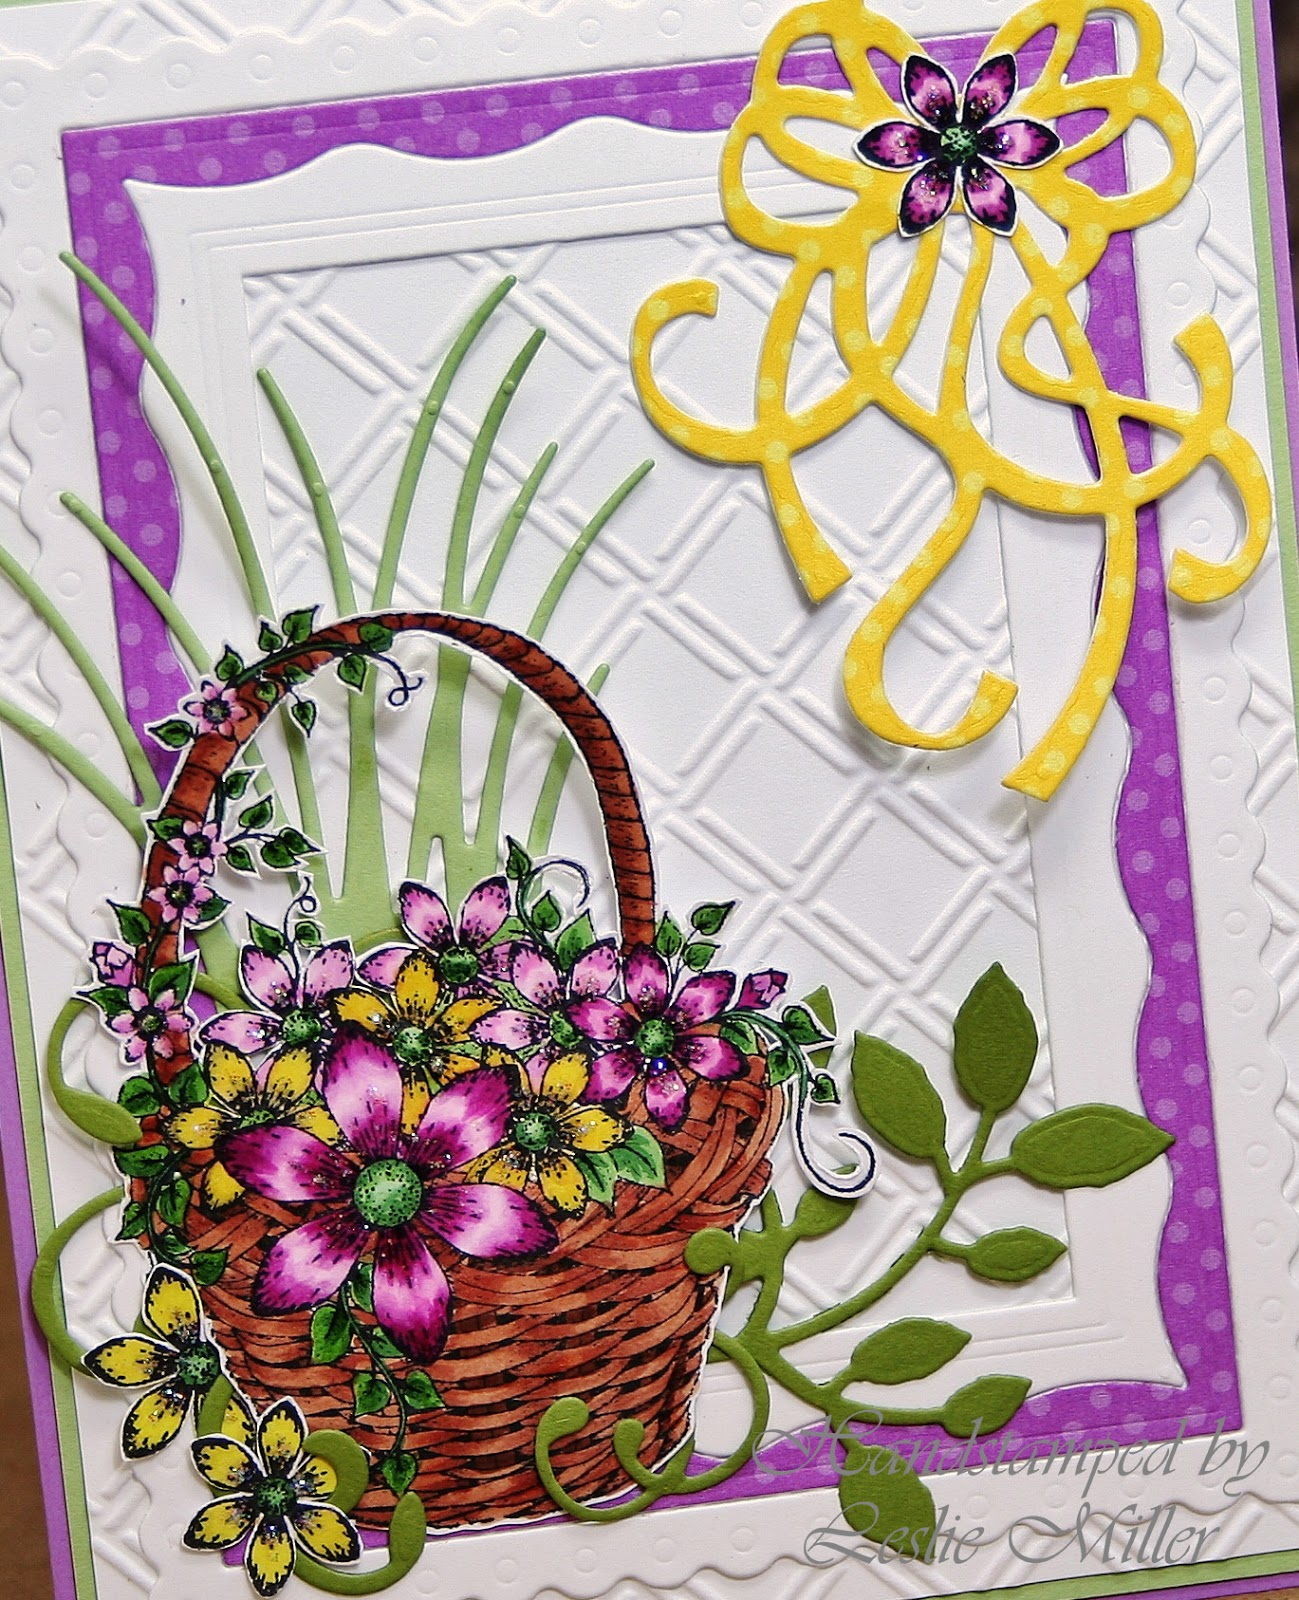 Dies r us a tisket a tasket a little flower basket i added a little glitter to the flowers too with all these pretty parts i didnt pop up a single thing or use any hardware on the card yet its loaded izmirmasajfo